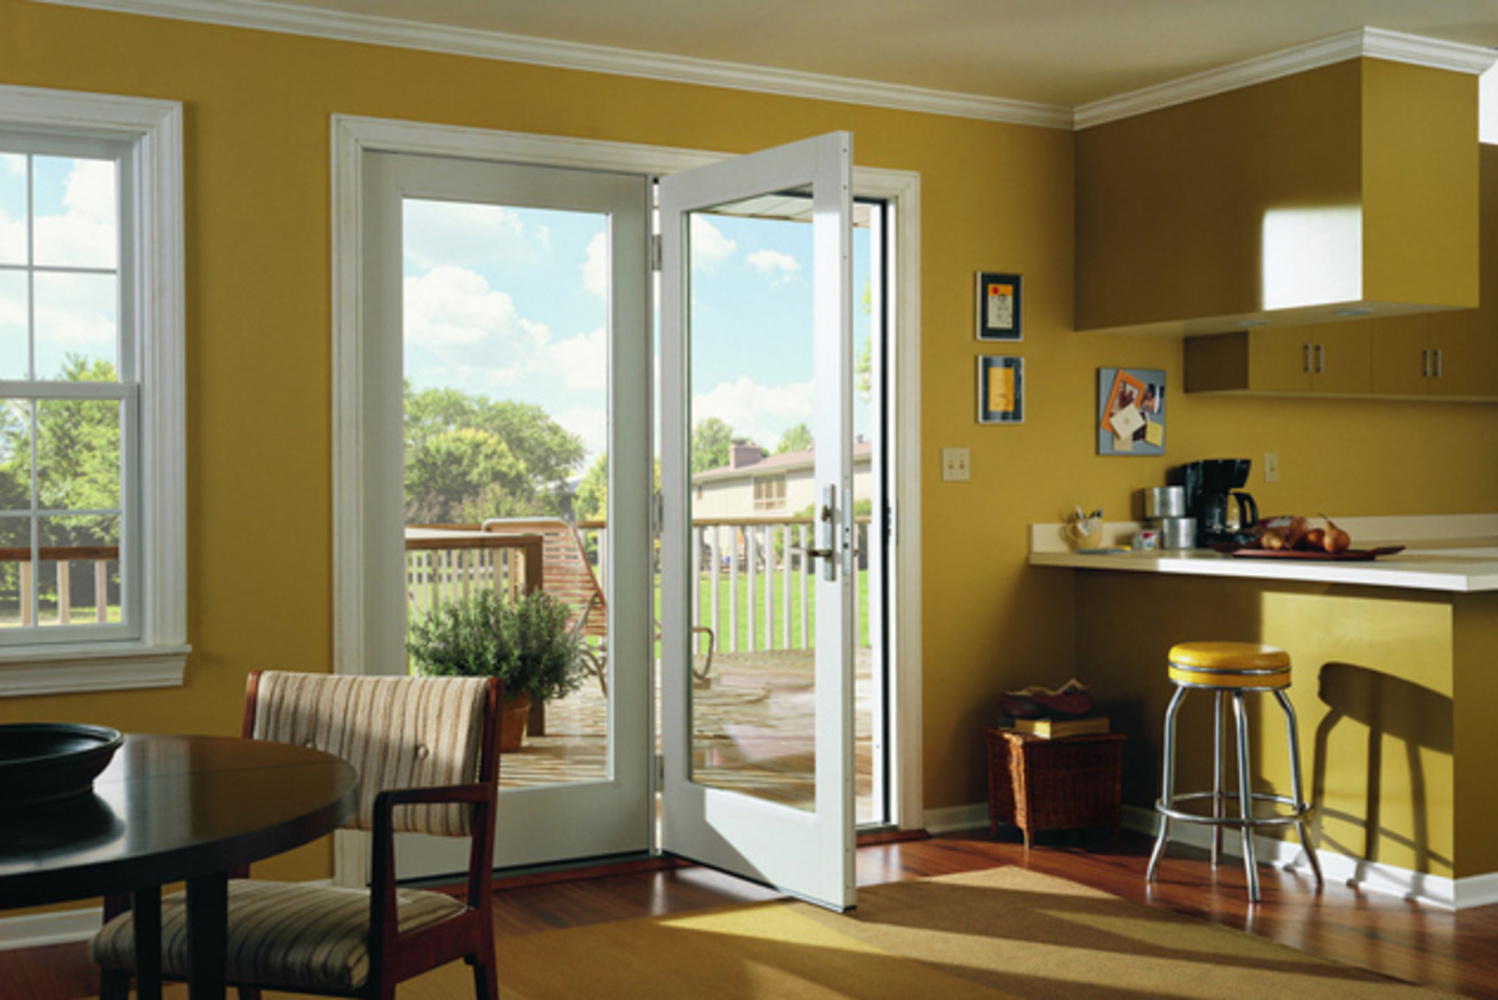 Residential Doors from Schoeneman's